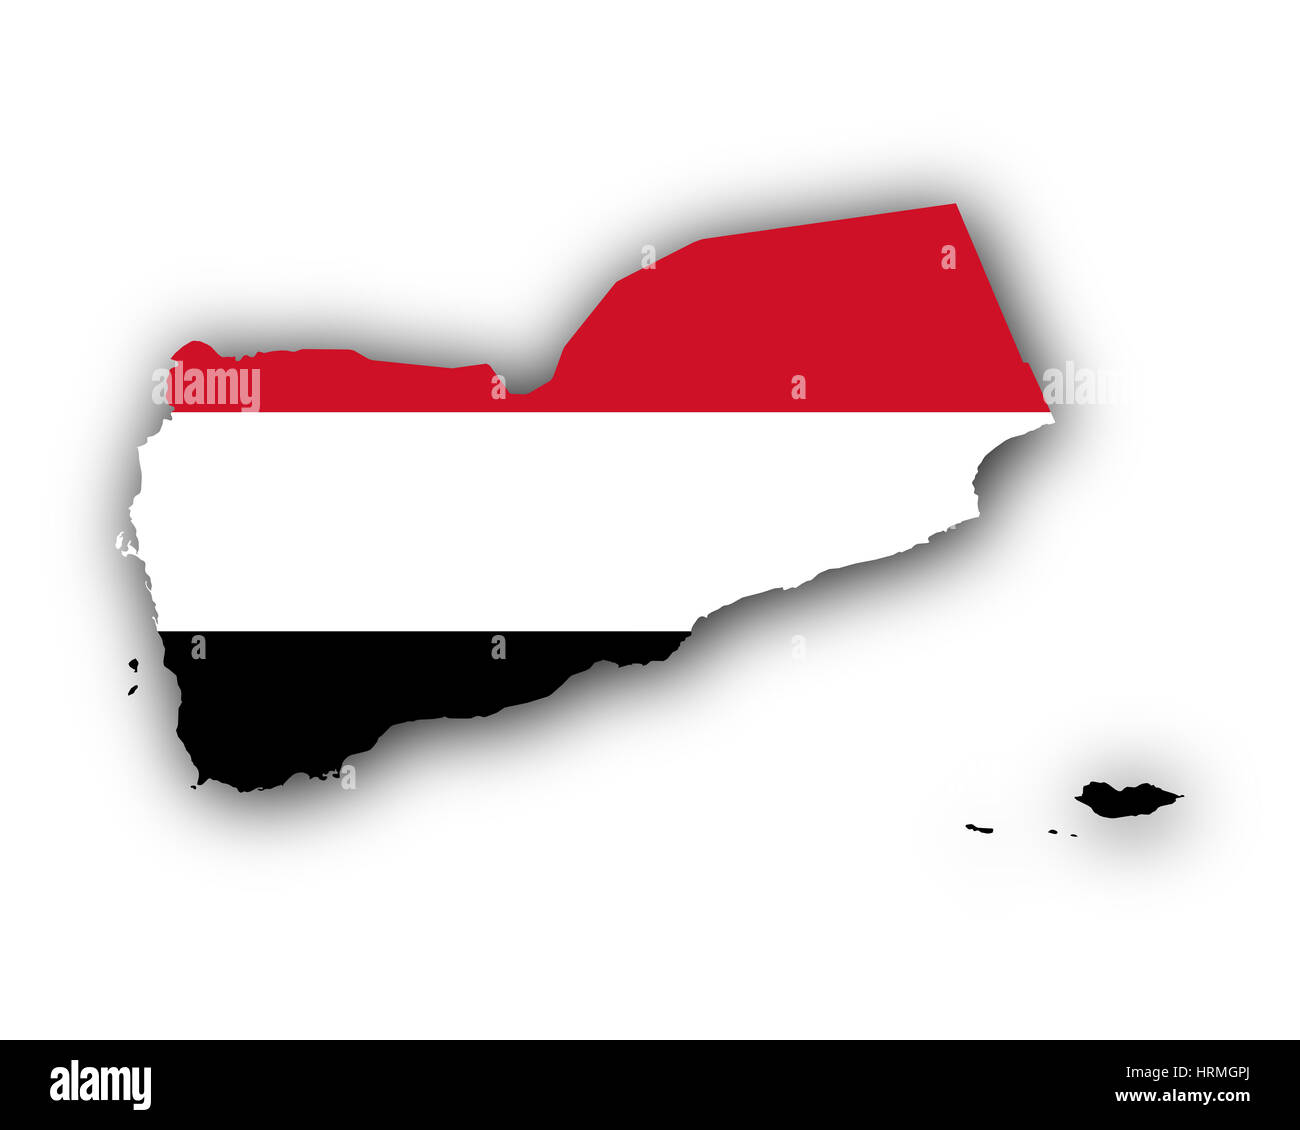 Map and flag of Yemen - Stock Image